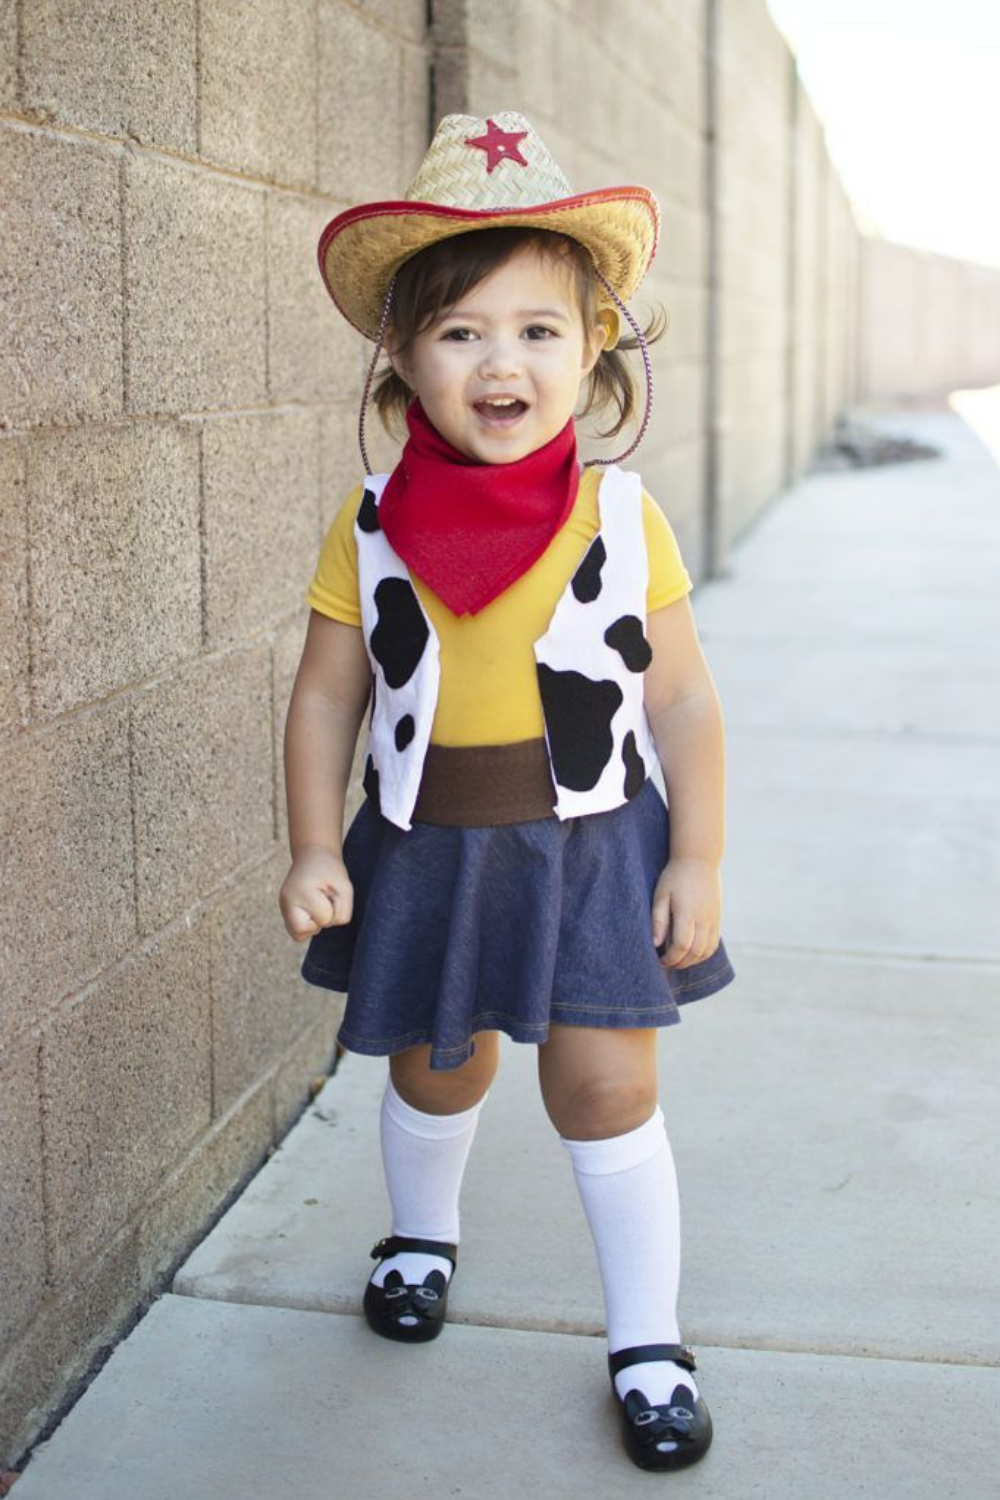 Homemade Halloween Costumes For Kids The Fashion Fantasy Diy Halloween Costumes For Kids Halloween Costumes Kids Boys Halloween Costumes For Kids